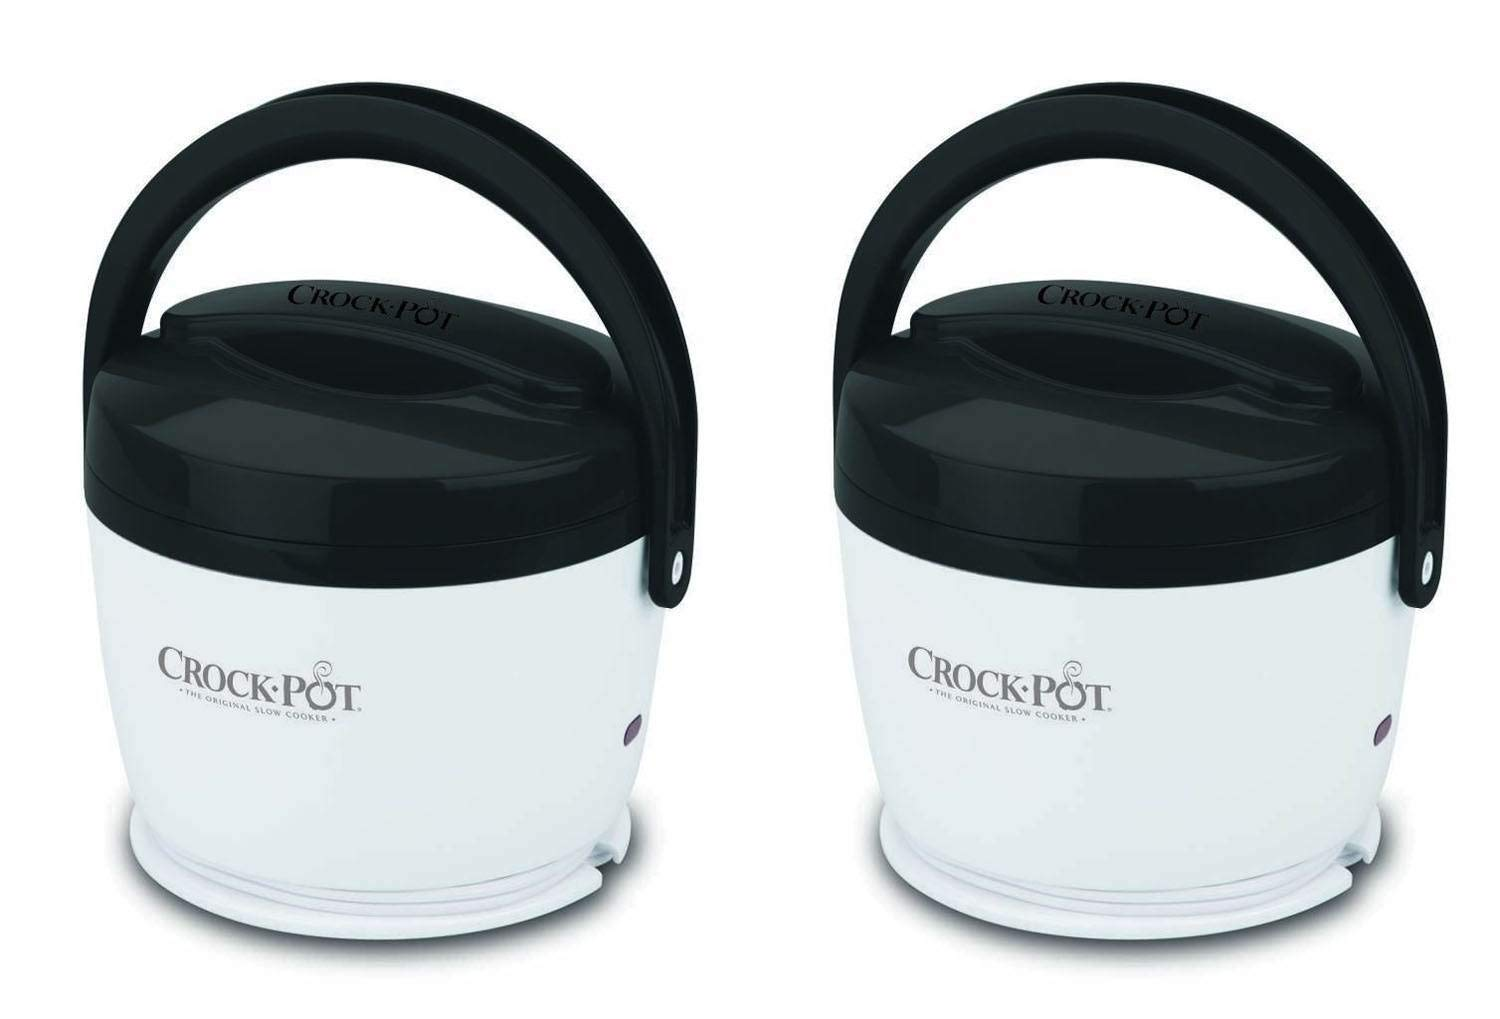 2 Crock-Pot SCCPLC200-G-NP Portable Lunch Crock Slow Cooker Food Warmers 20 oz.